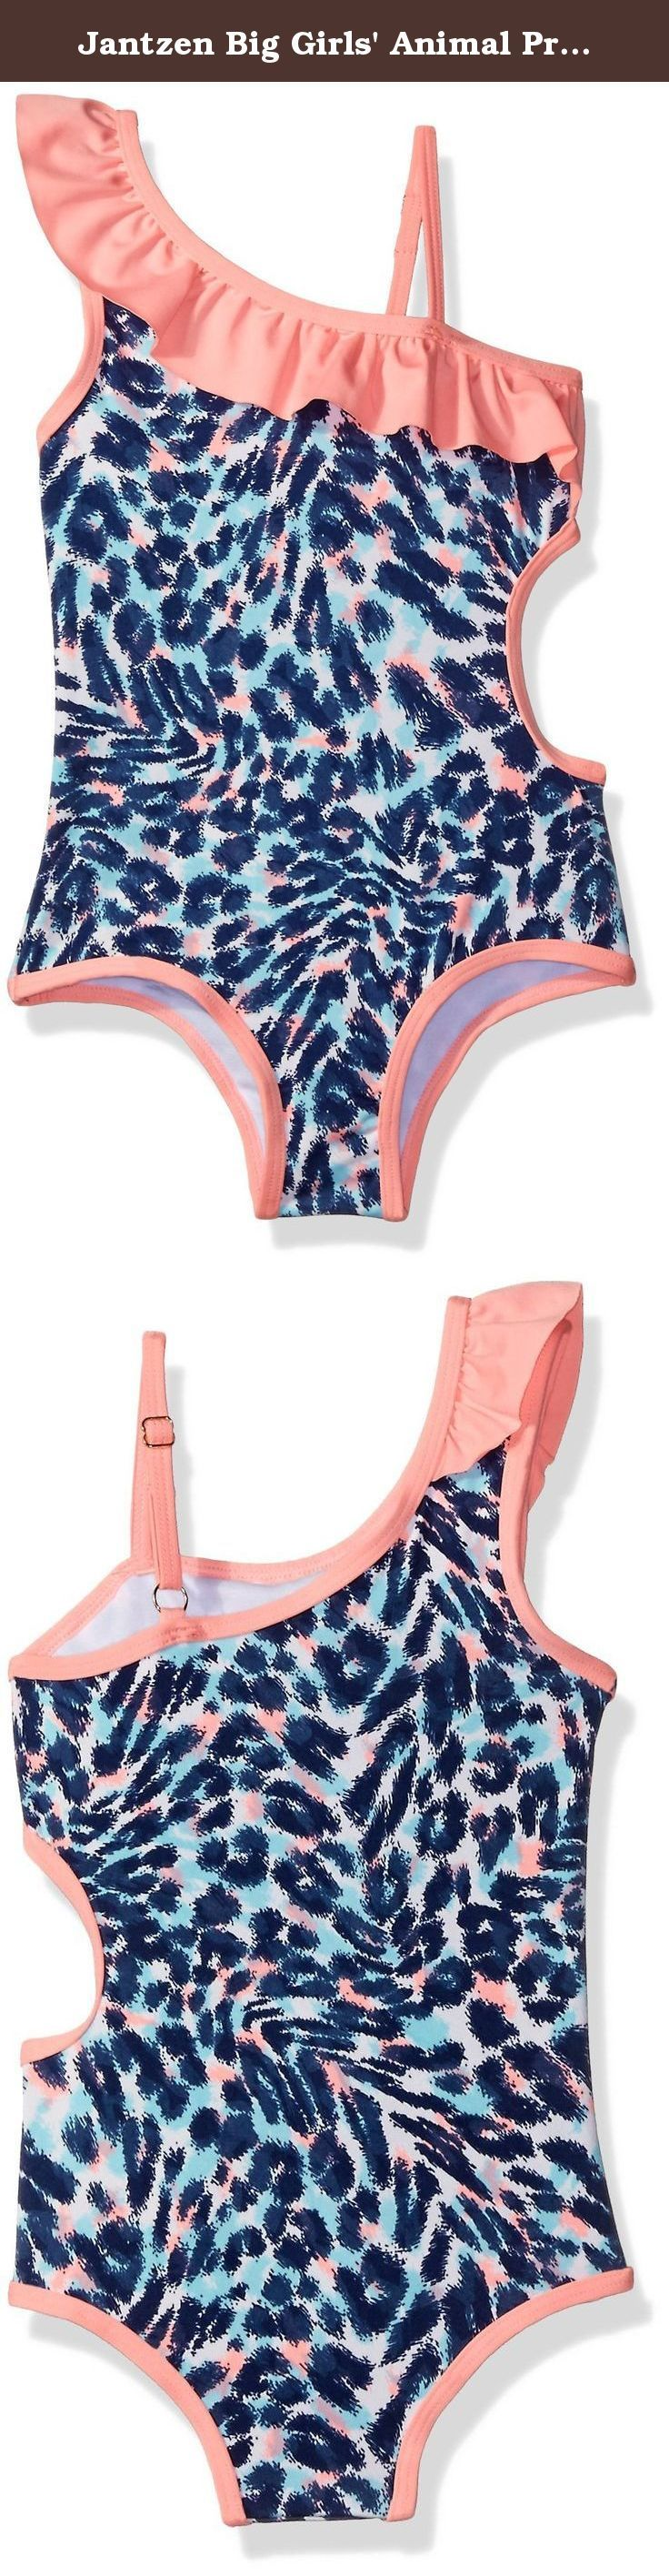 Jantzen Big Girls' Animal Print One Piece Swimsuit, Coral, 12. Animal-print one-piece with side cut out and shoulder styling with ruffles.